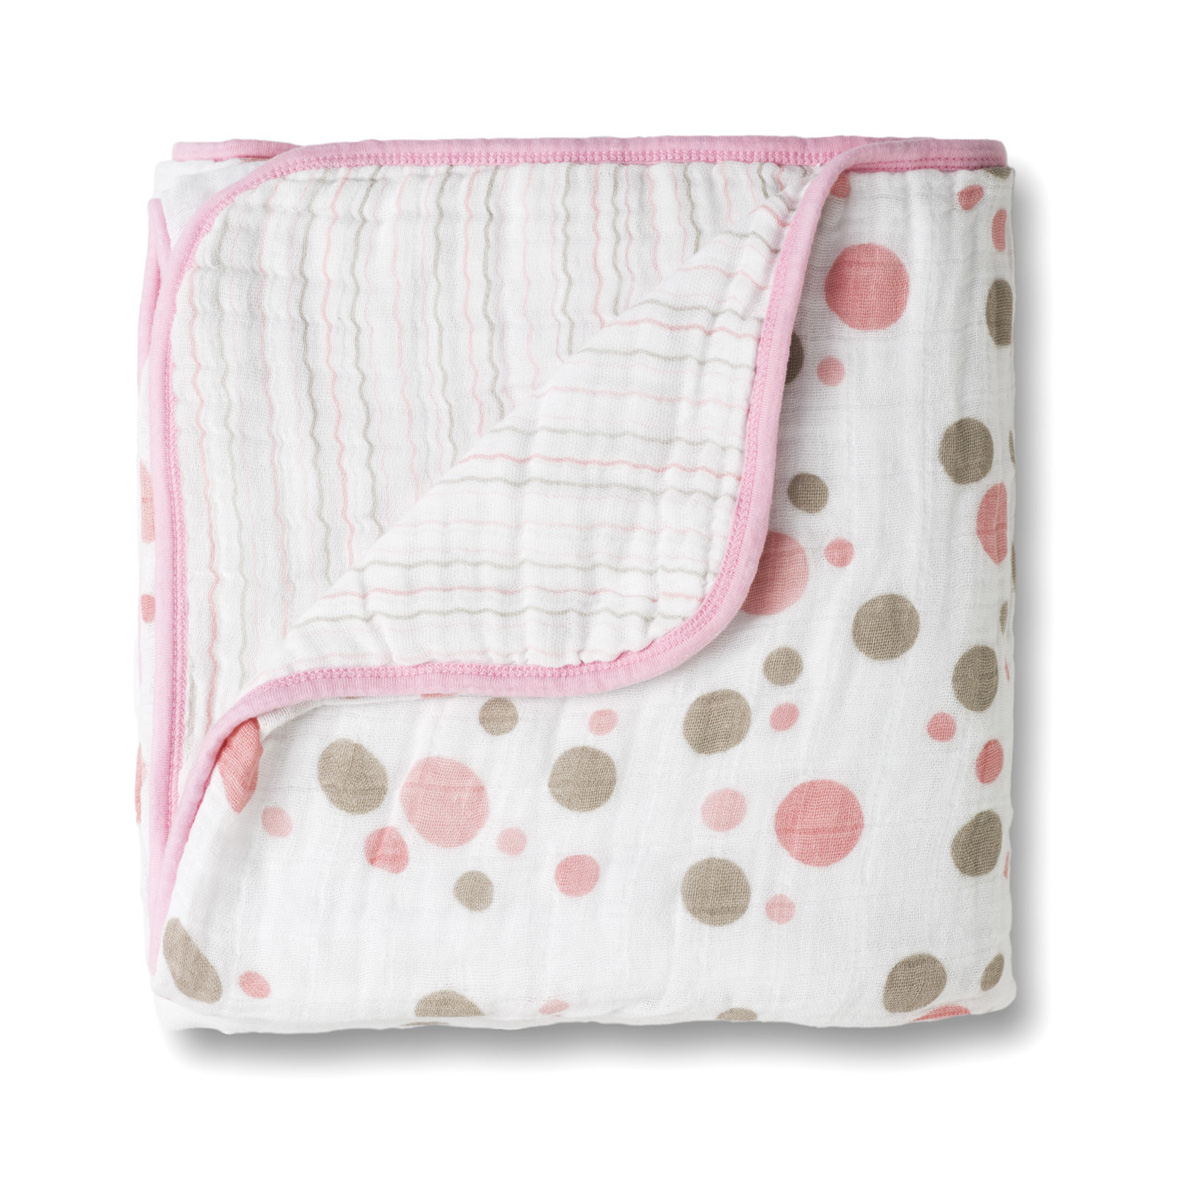 Wrap your baby up in softness with these aden by aden + anais Muslin swaddleplus Blankets. Made of soft cotton muslin, these wraps provide airflow and comfort, and come in handy in so many ways when you're at home or on the go.